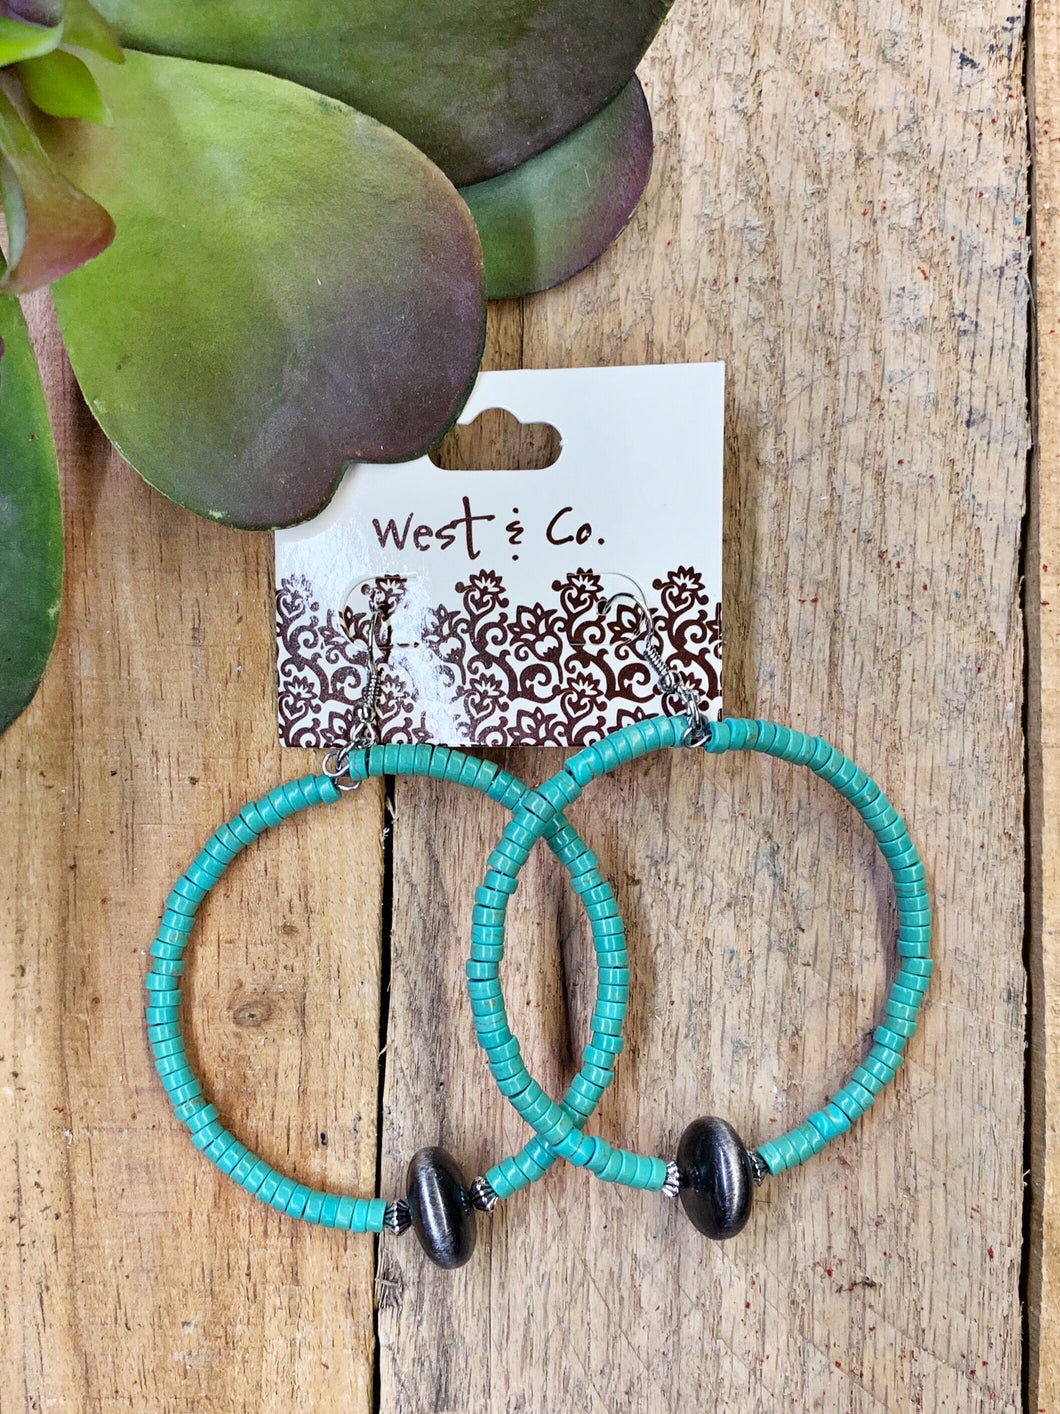 Turquoise Hoops Earrings  West & Co - Horse Creek Boutique